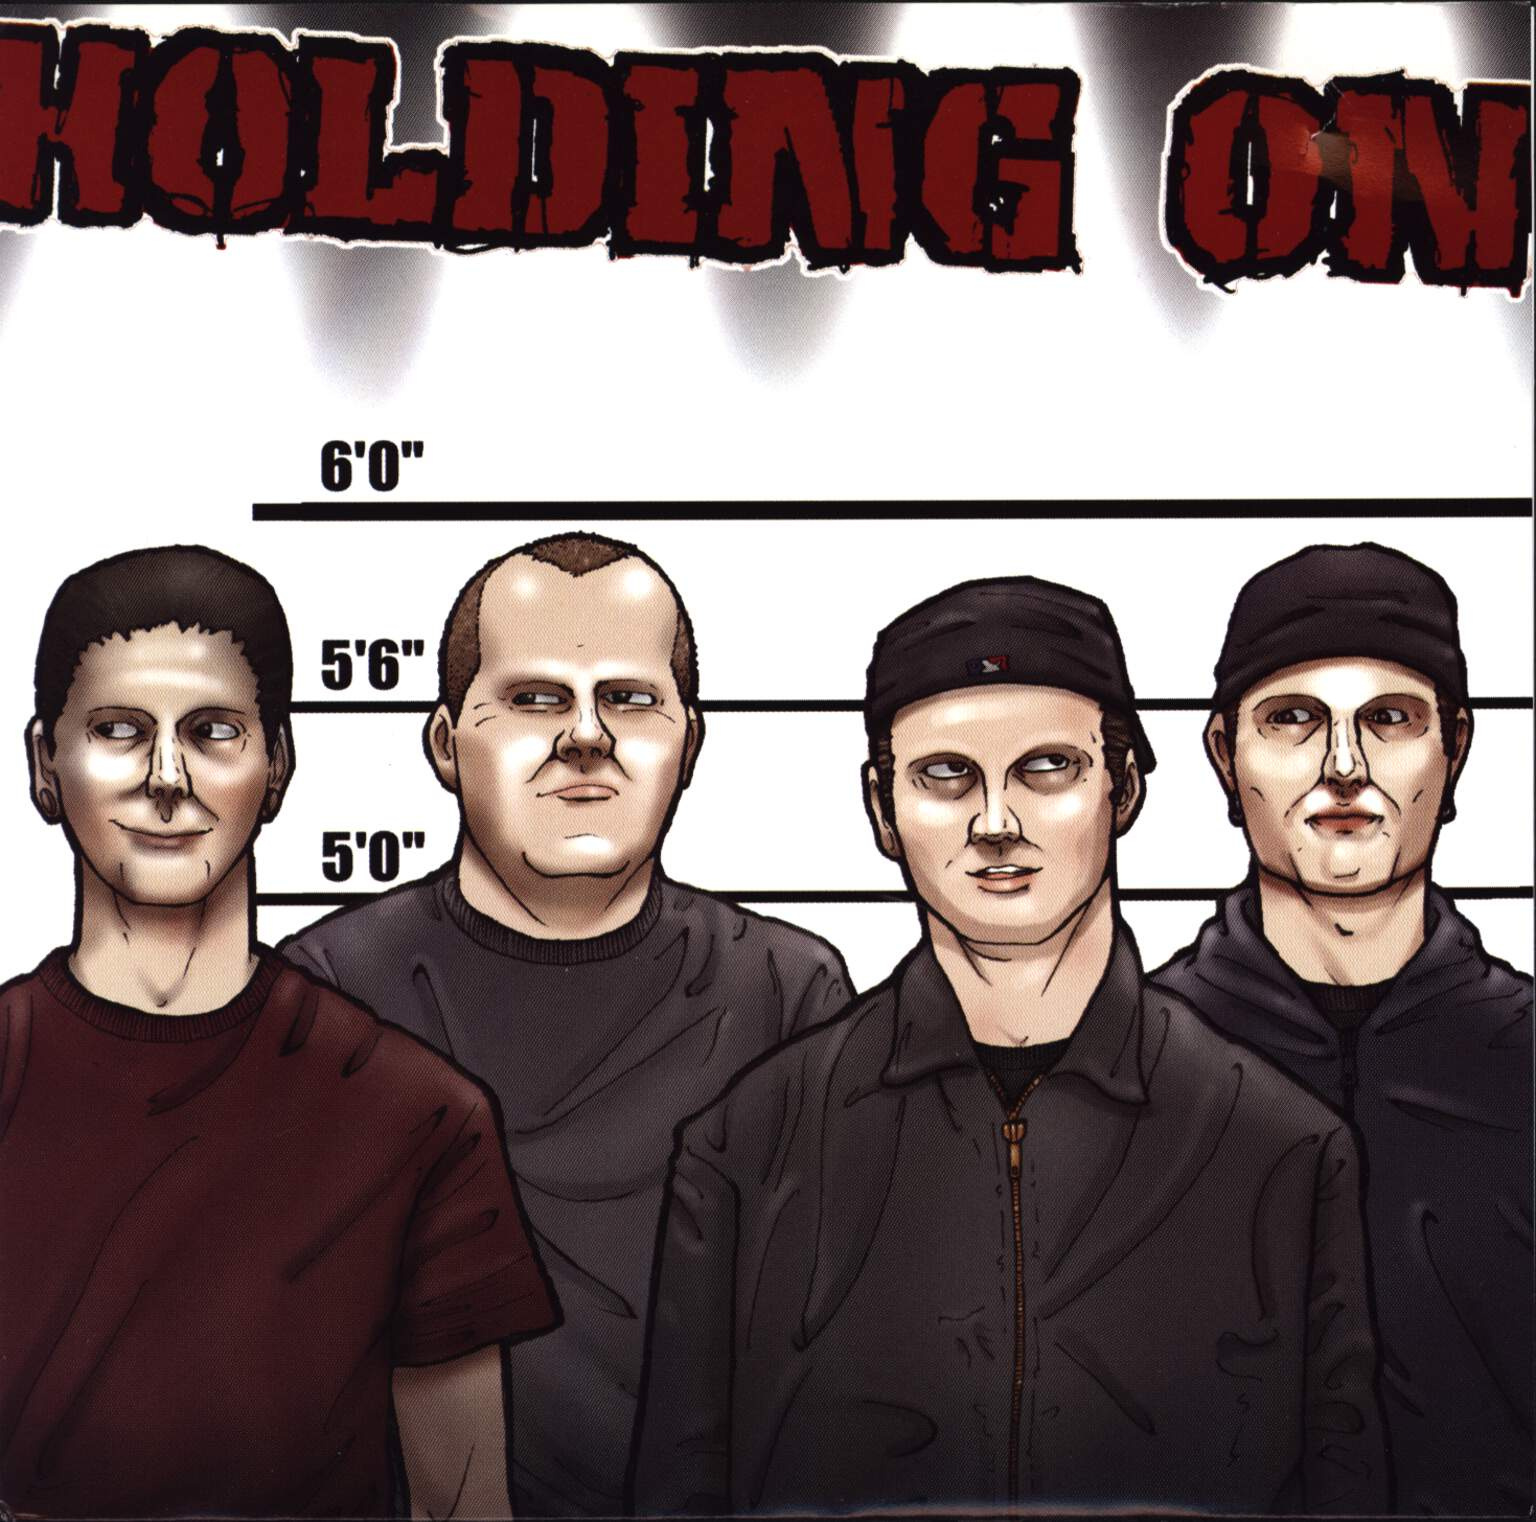 "Holding on: Holding On / Coalition, 7"" Single (Vinyl)"